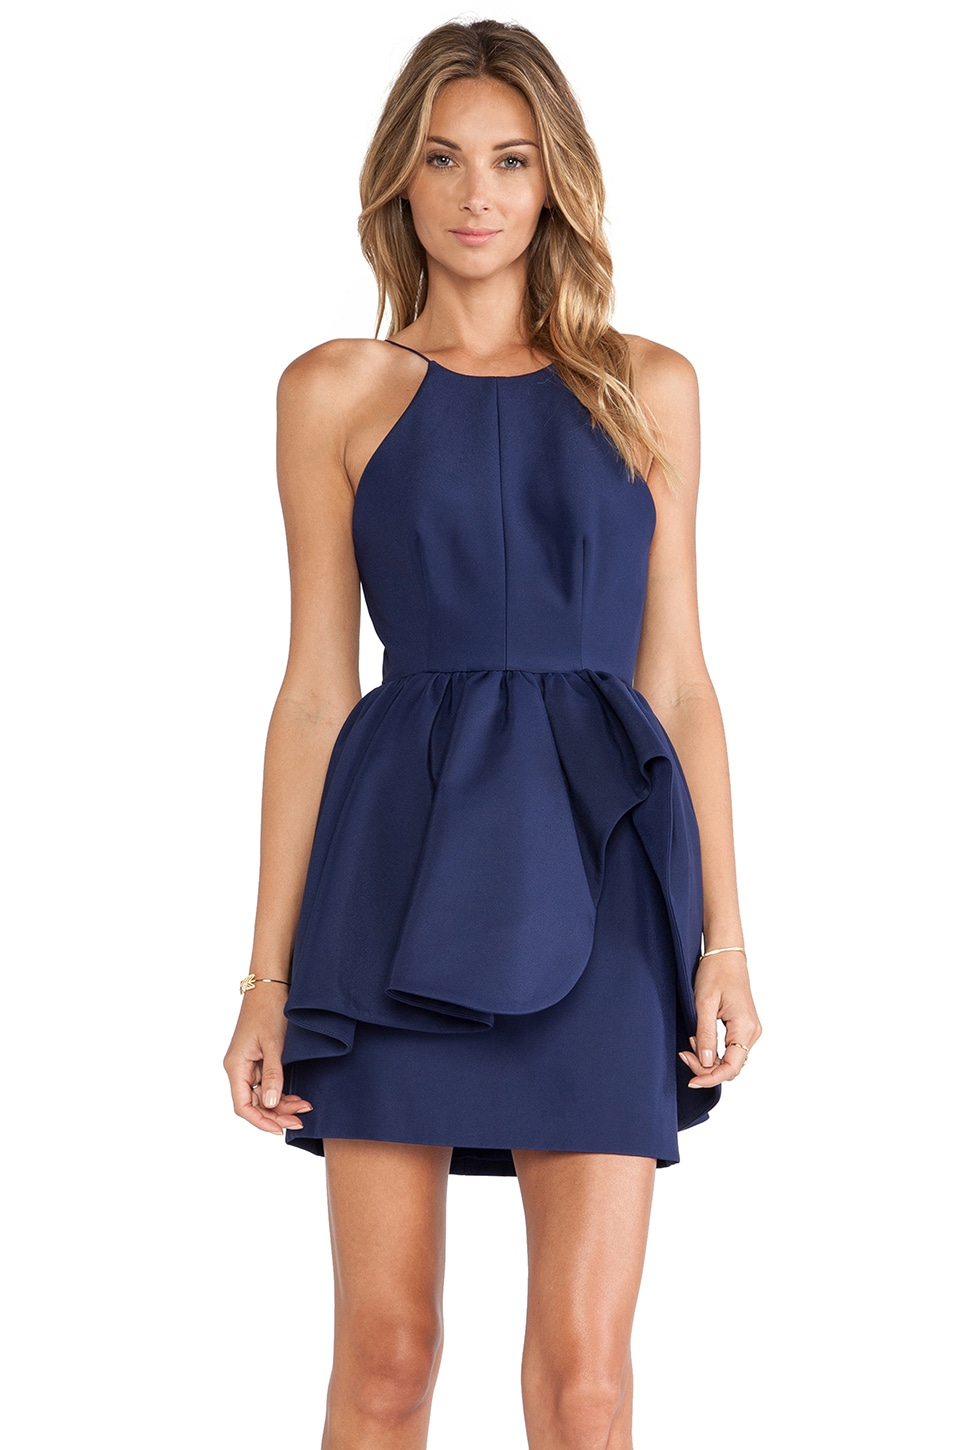 C/MEO Alone Tonight Dress in Navy Blue